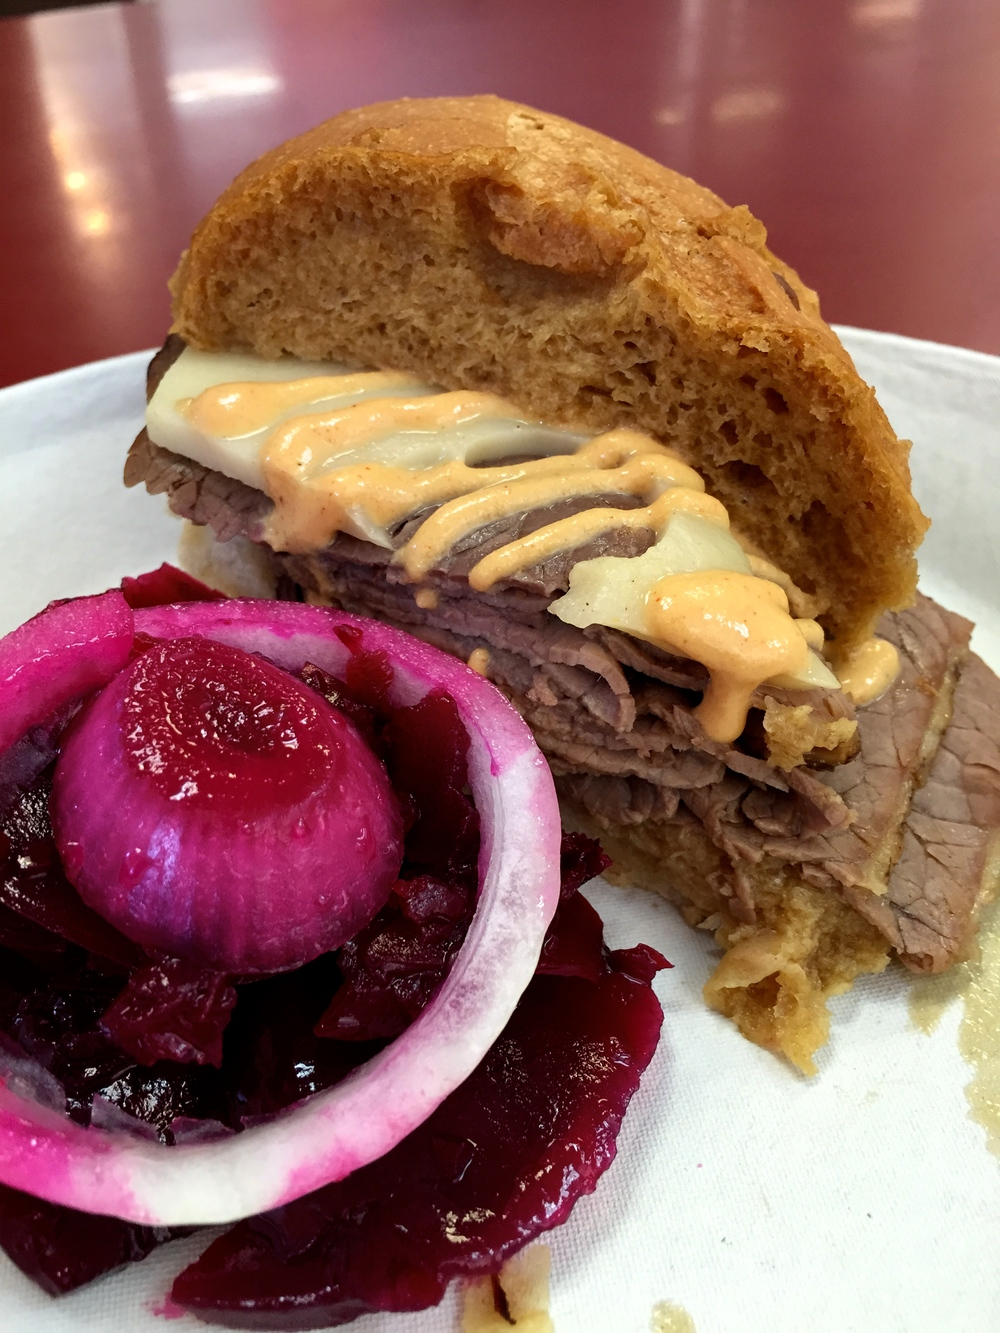 Beef Dip with Swiss cheese, Philippe's hot mustard, and pickled beet salad.